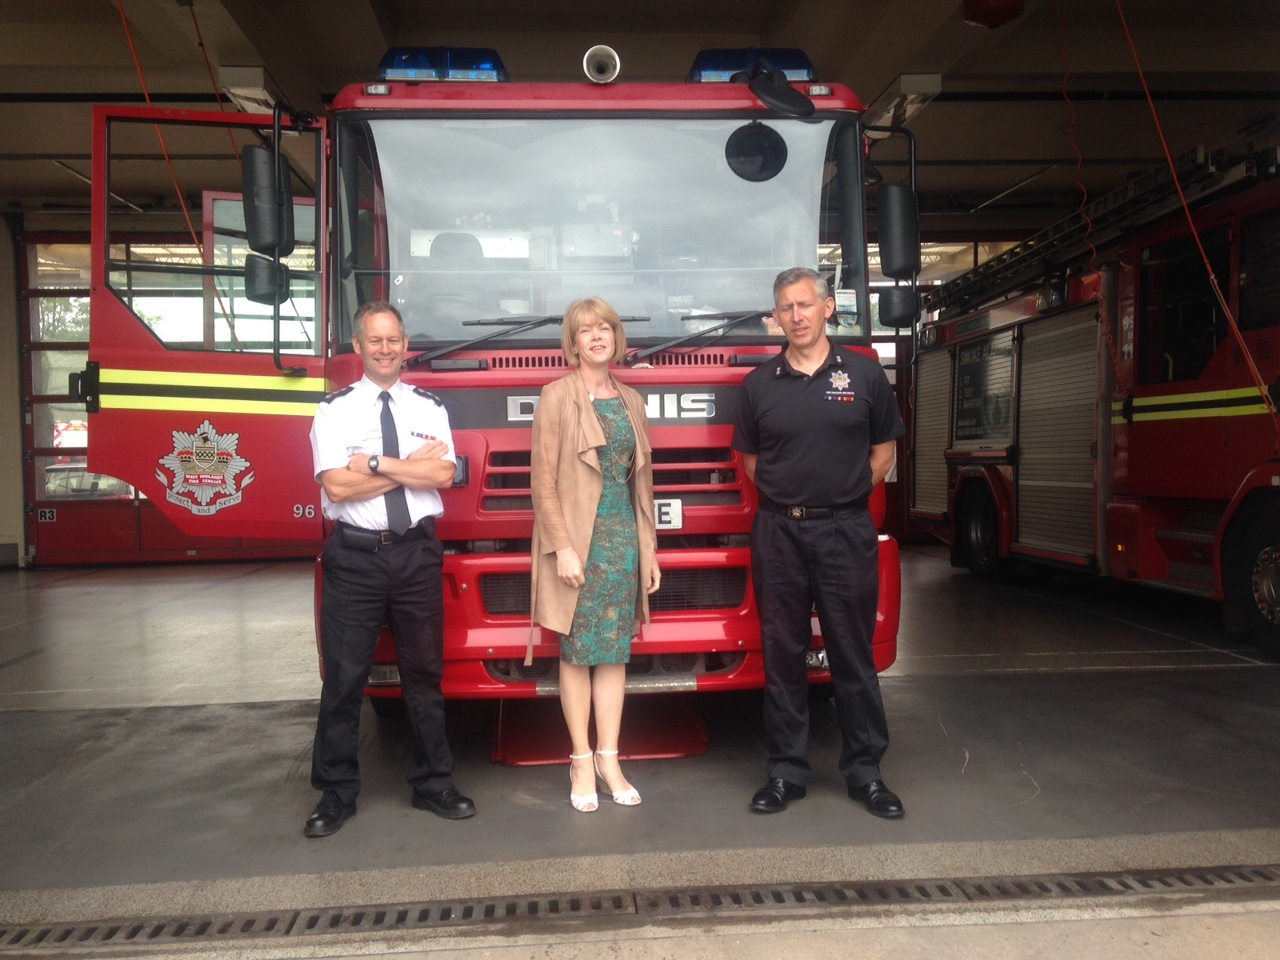 Aldridge Fire Station, Walsall Housing Group & Severn Trent Water visits